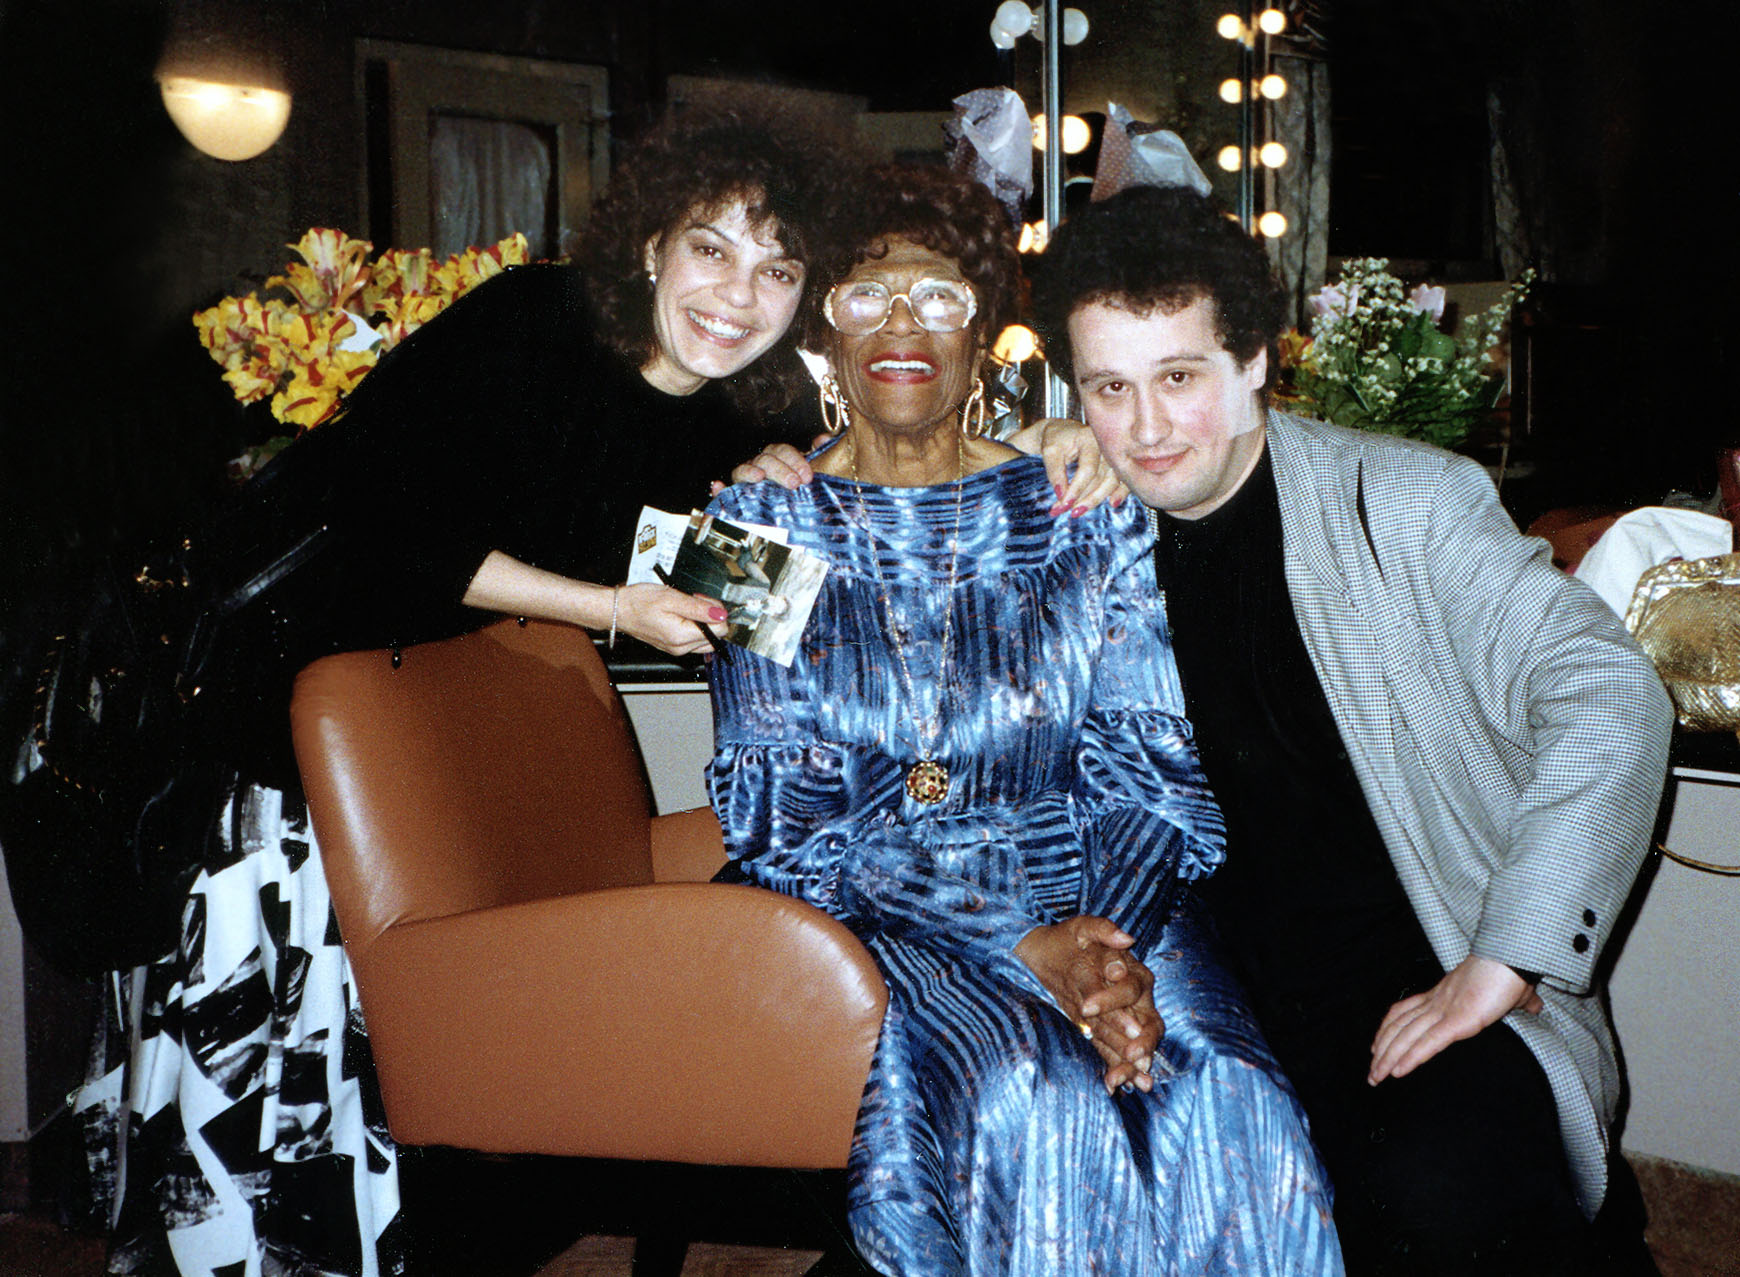 Datevik with legendary jazz singer, Ella Fitzgerald , often referred to as the First Lady of Song, Queen of Jazz, and Lady Ella.